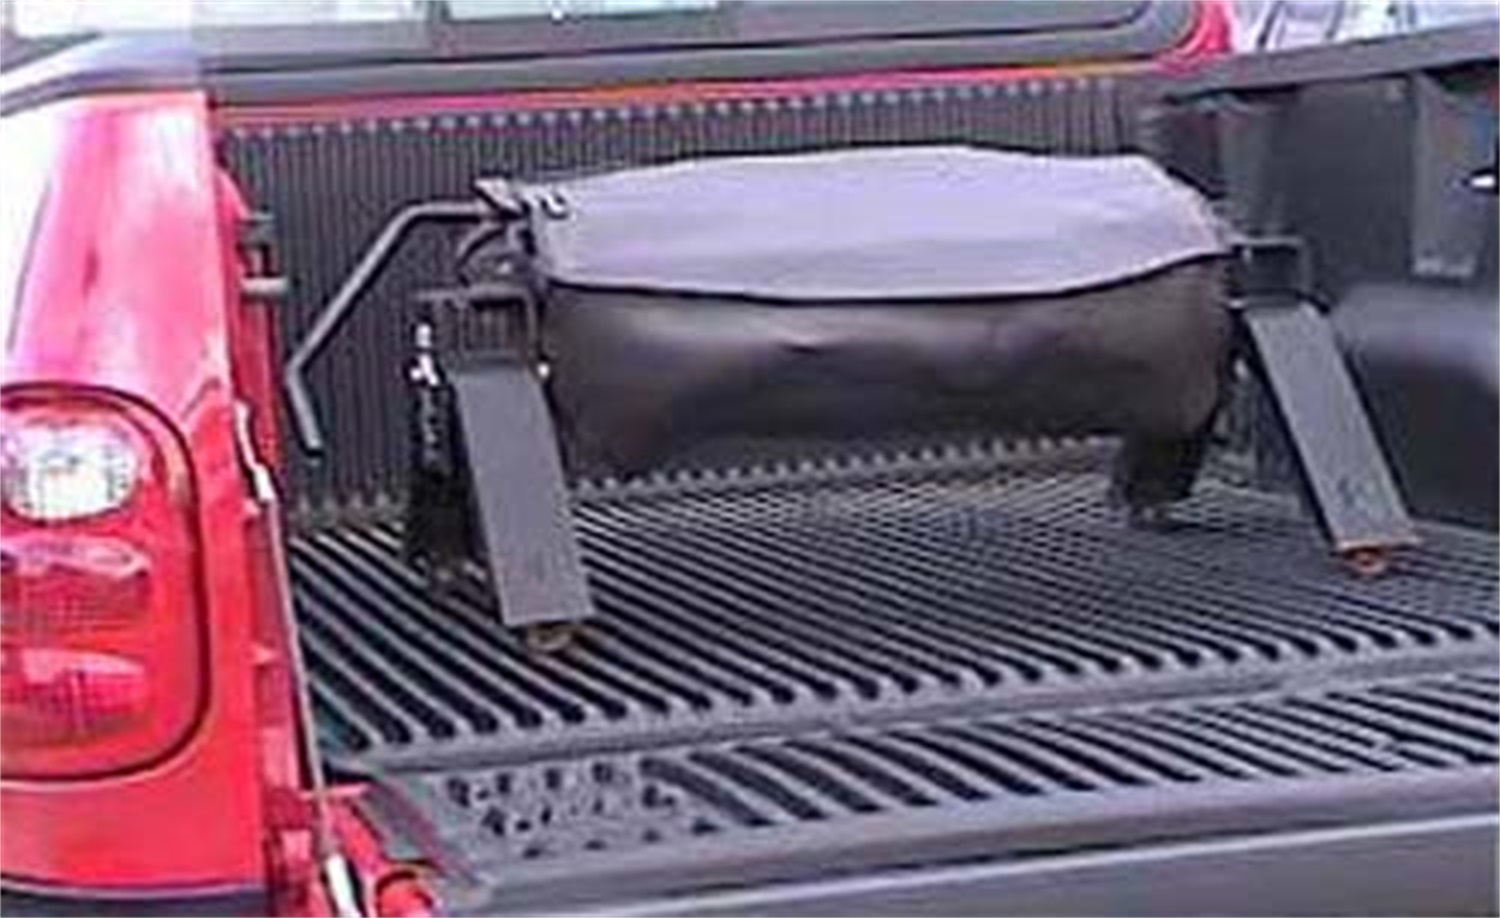 Fifth Wheel Trailer Hitch Cover, Fits Most 35 in. Hitches